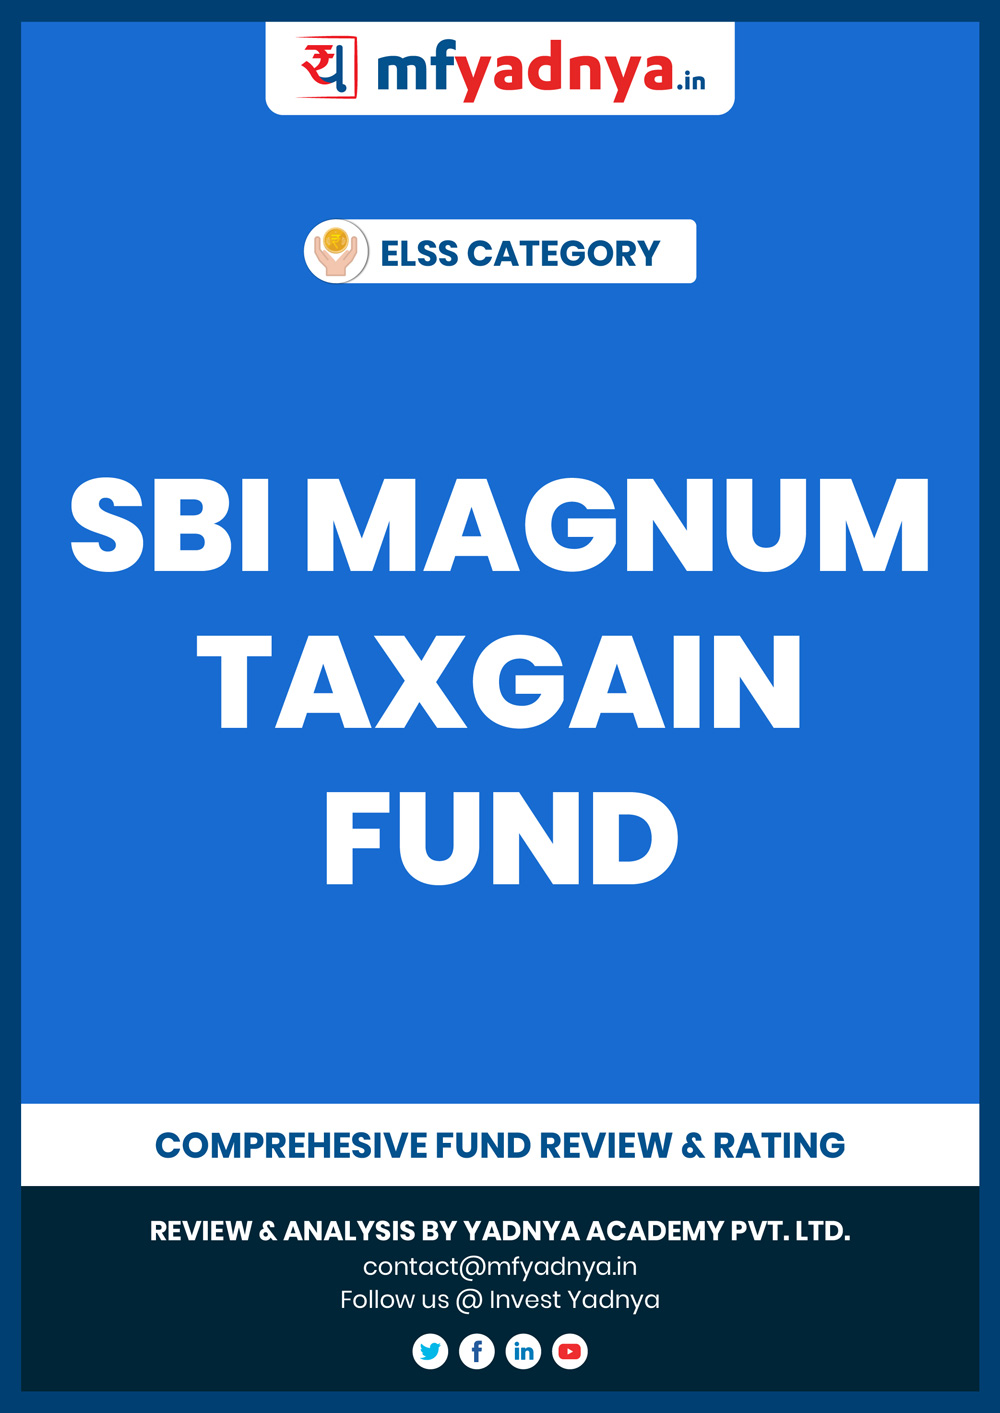 SBI Magnum Taxgain Fund - Detailed Analysis & Review based on July 31st, 2019 data. Most Comprehensive and detailed review based on Yadnya's proprietary methodology of Green, Yellow & Red Star.